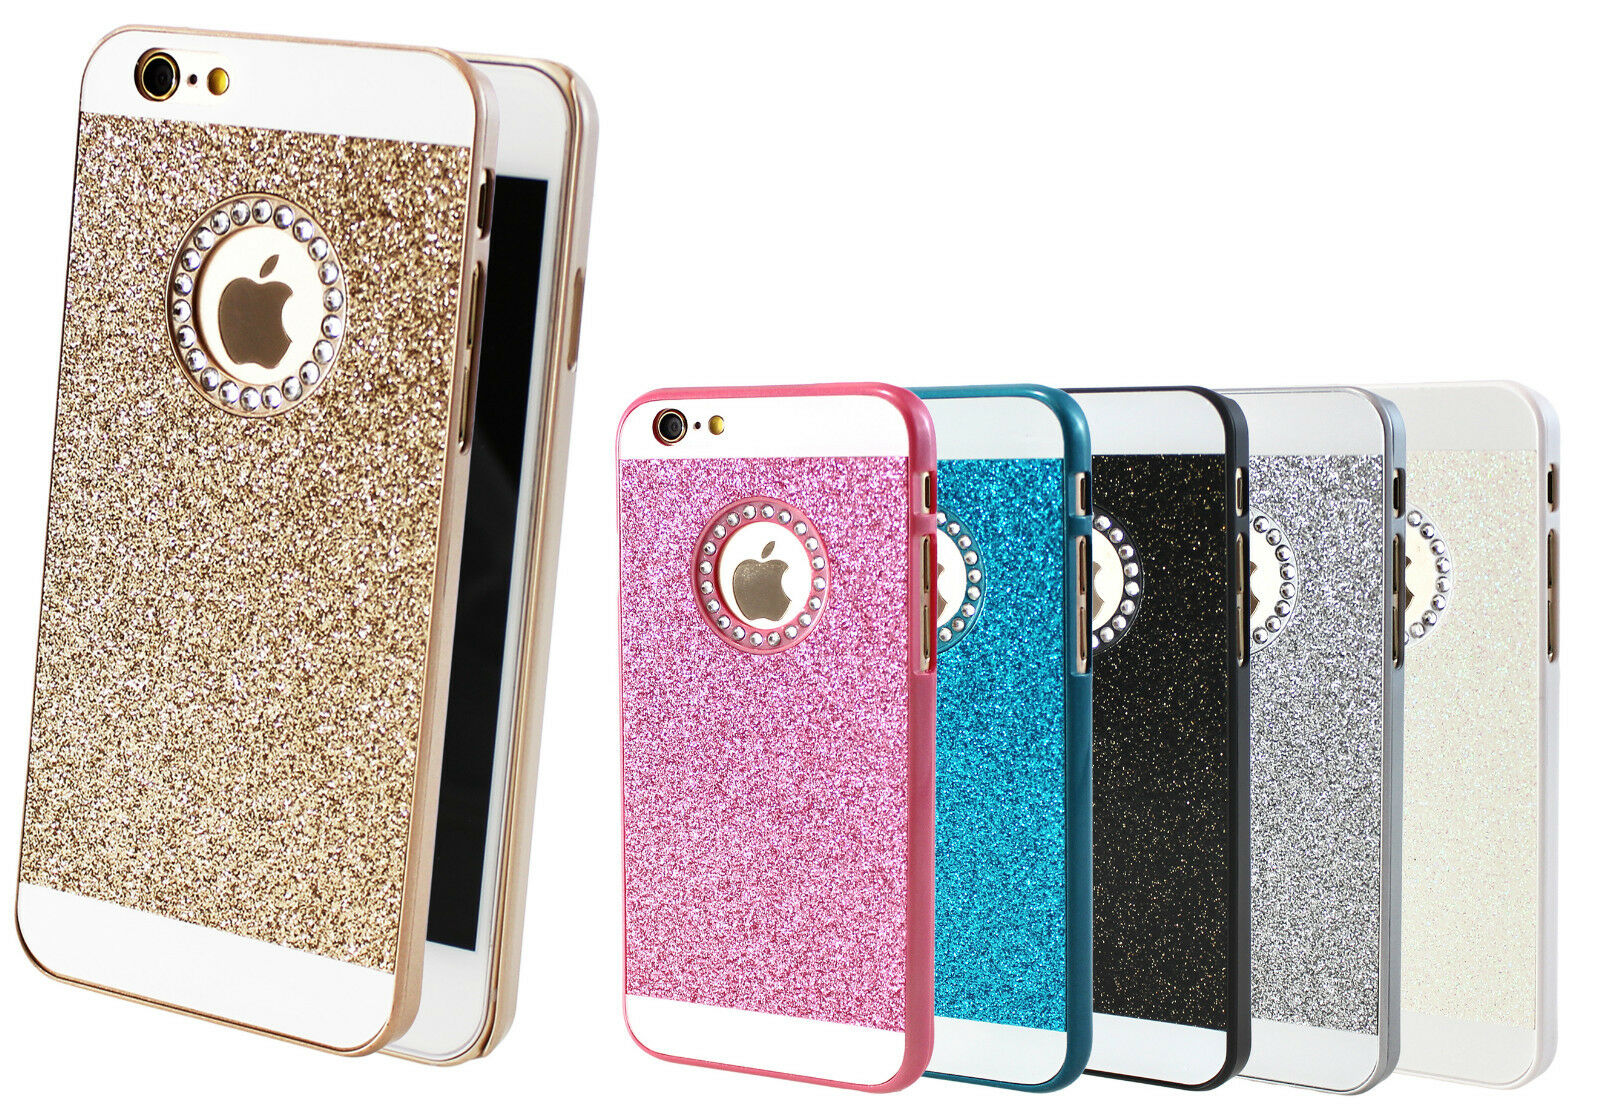 handy schutz h lle tasche glitzer iphone 4 5 6 case bumper. Black Bedroom Furniture Sets. Home Design Ideas